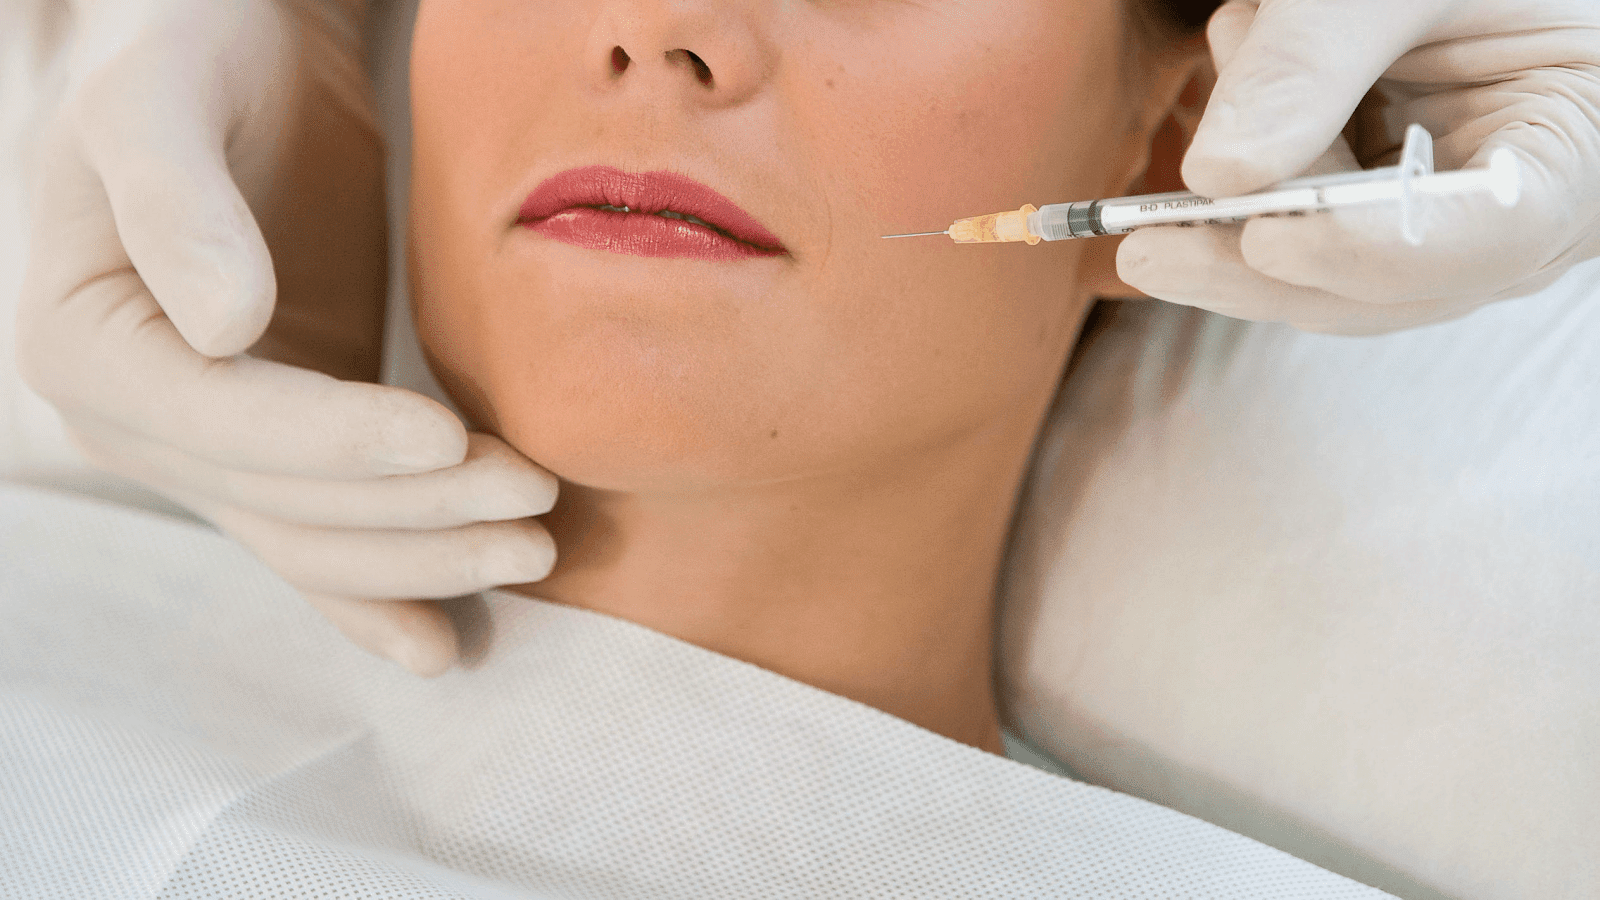 A woman with red lips gets a botox injection in her cheek.